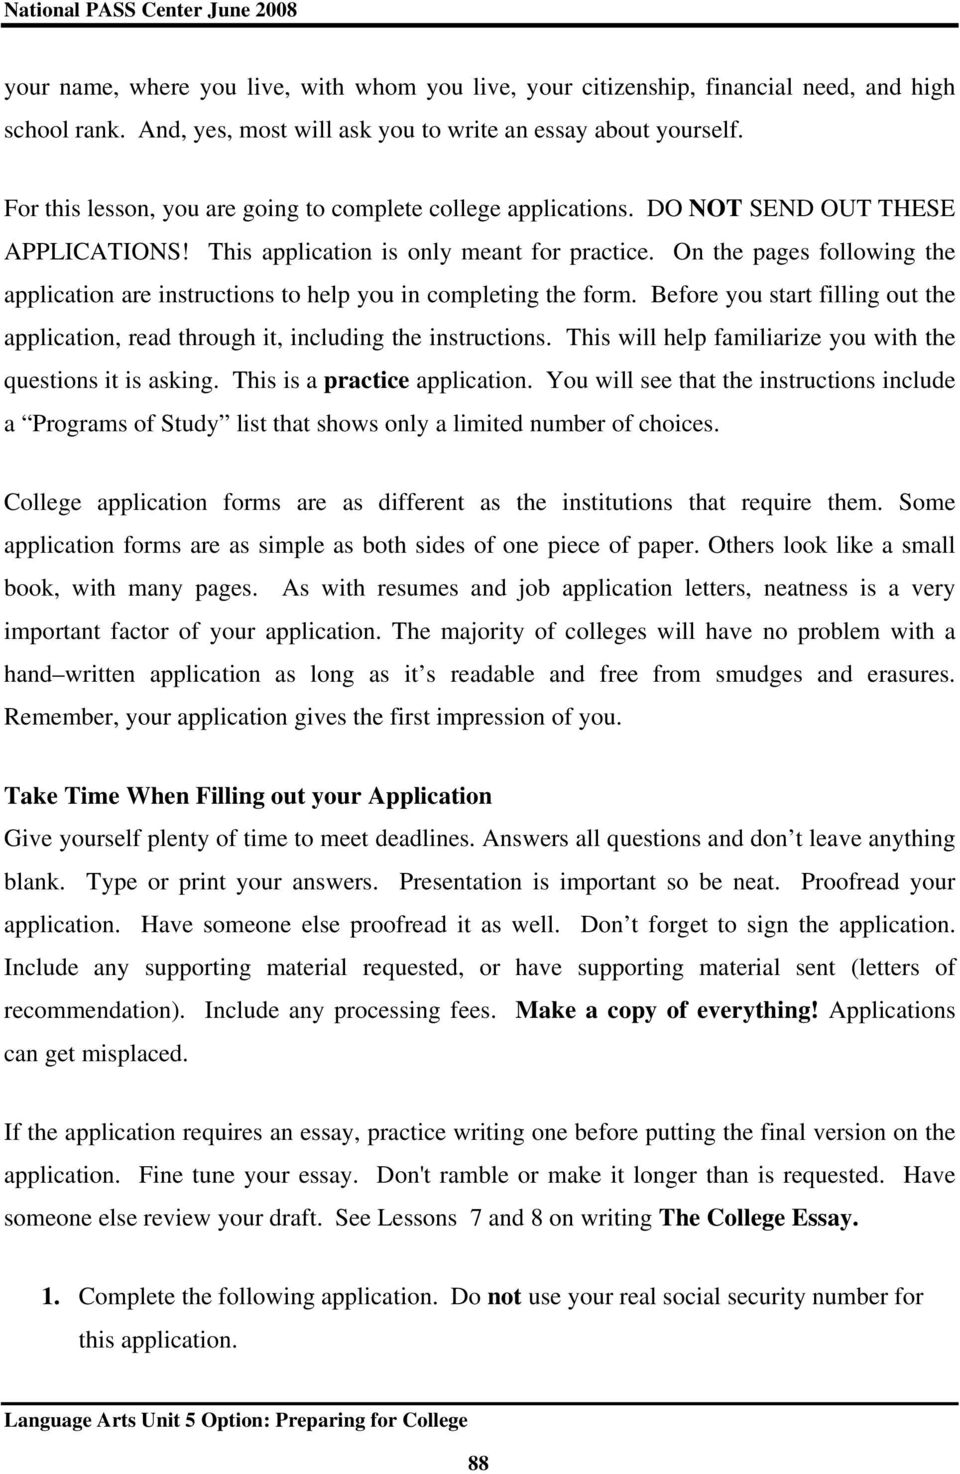 On the pages following the application are instructions to help you in completing the form. Before you start filling out the application, read through it, including the instructions.